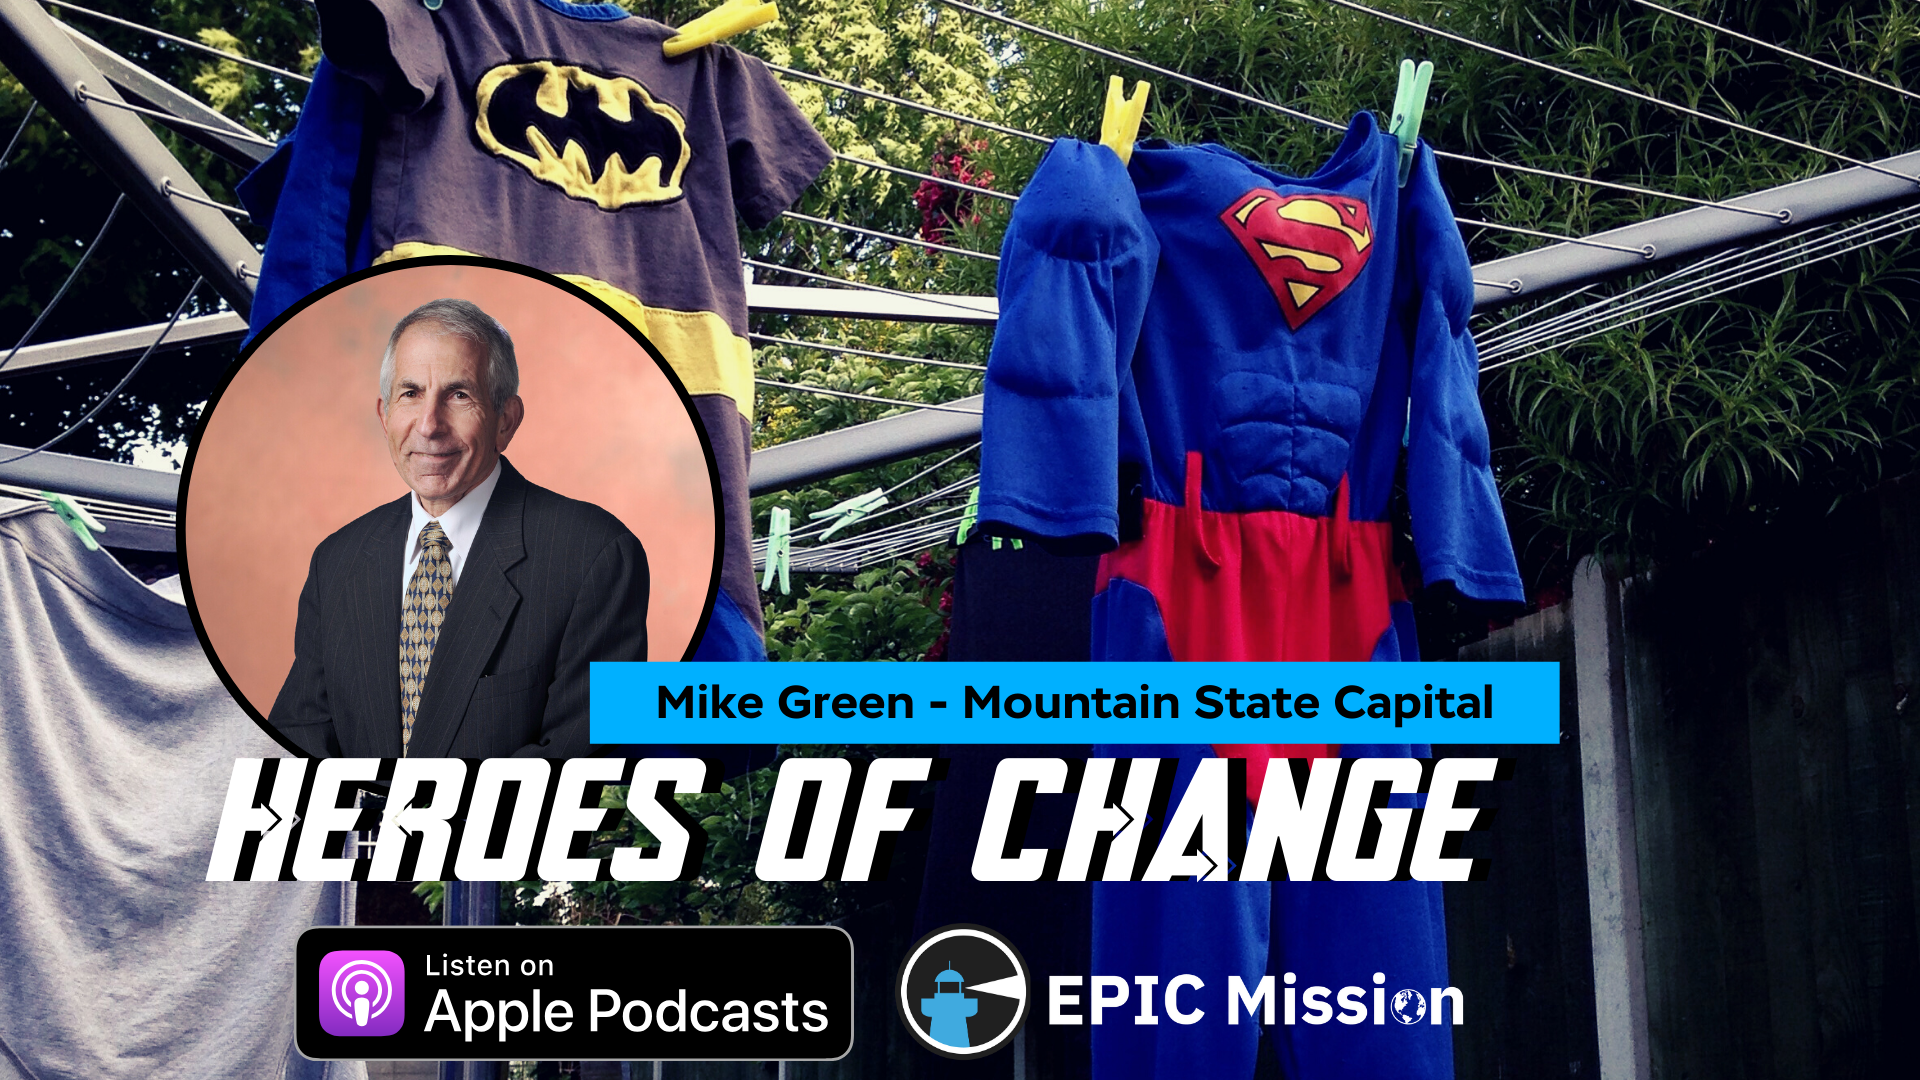 Heroes of Change: with Mike Green of Mountain State Capital